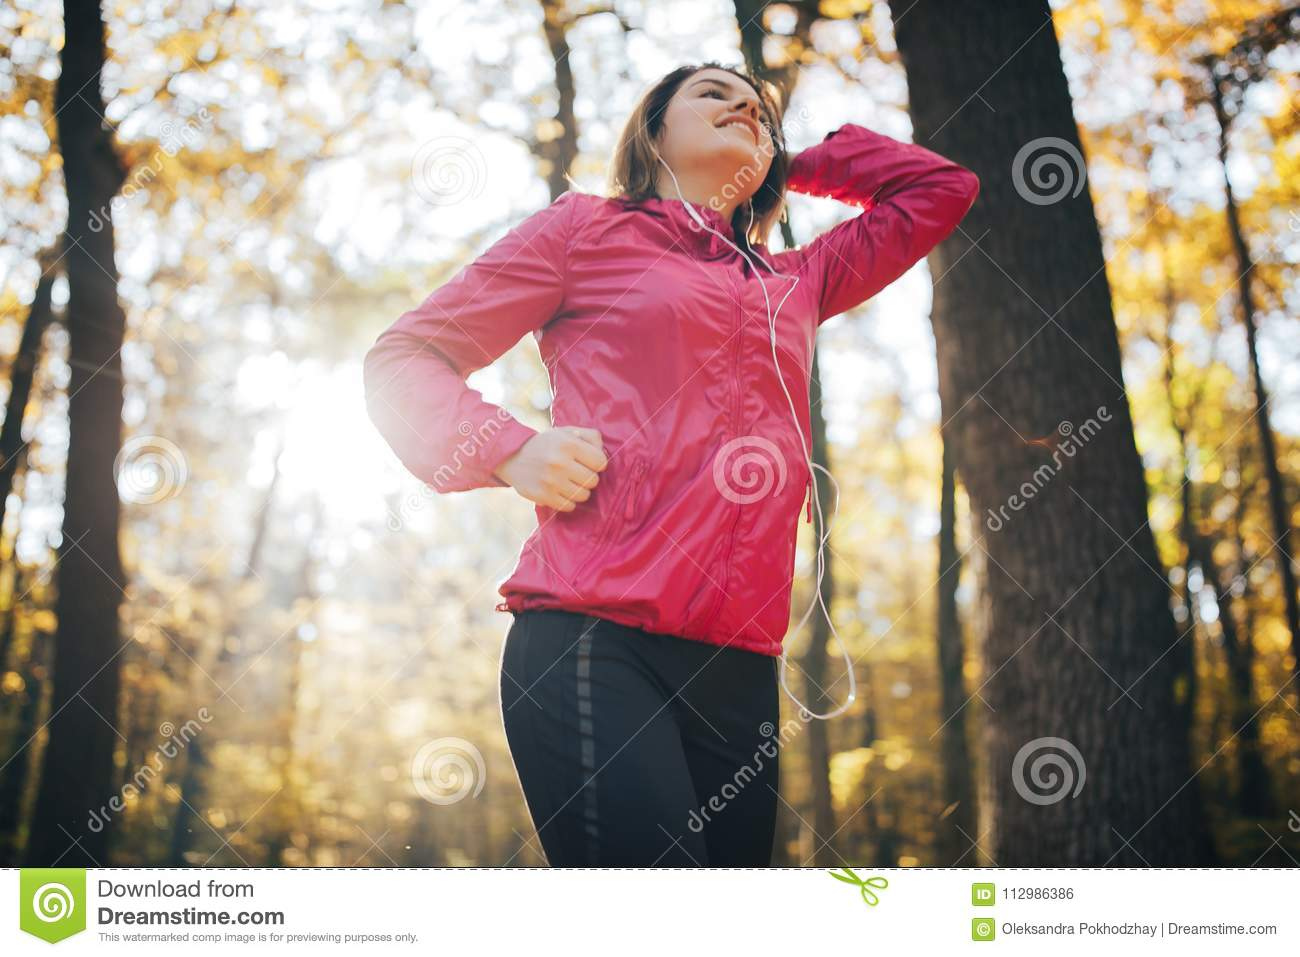 Girl who trains in the morning autumn park